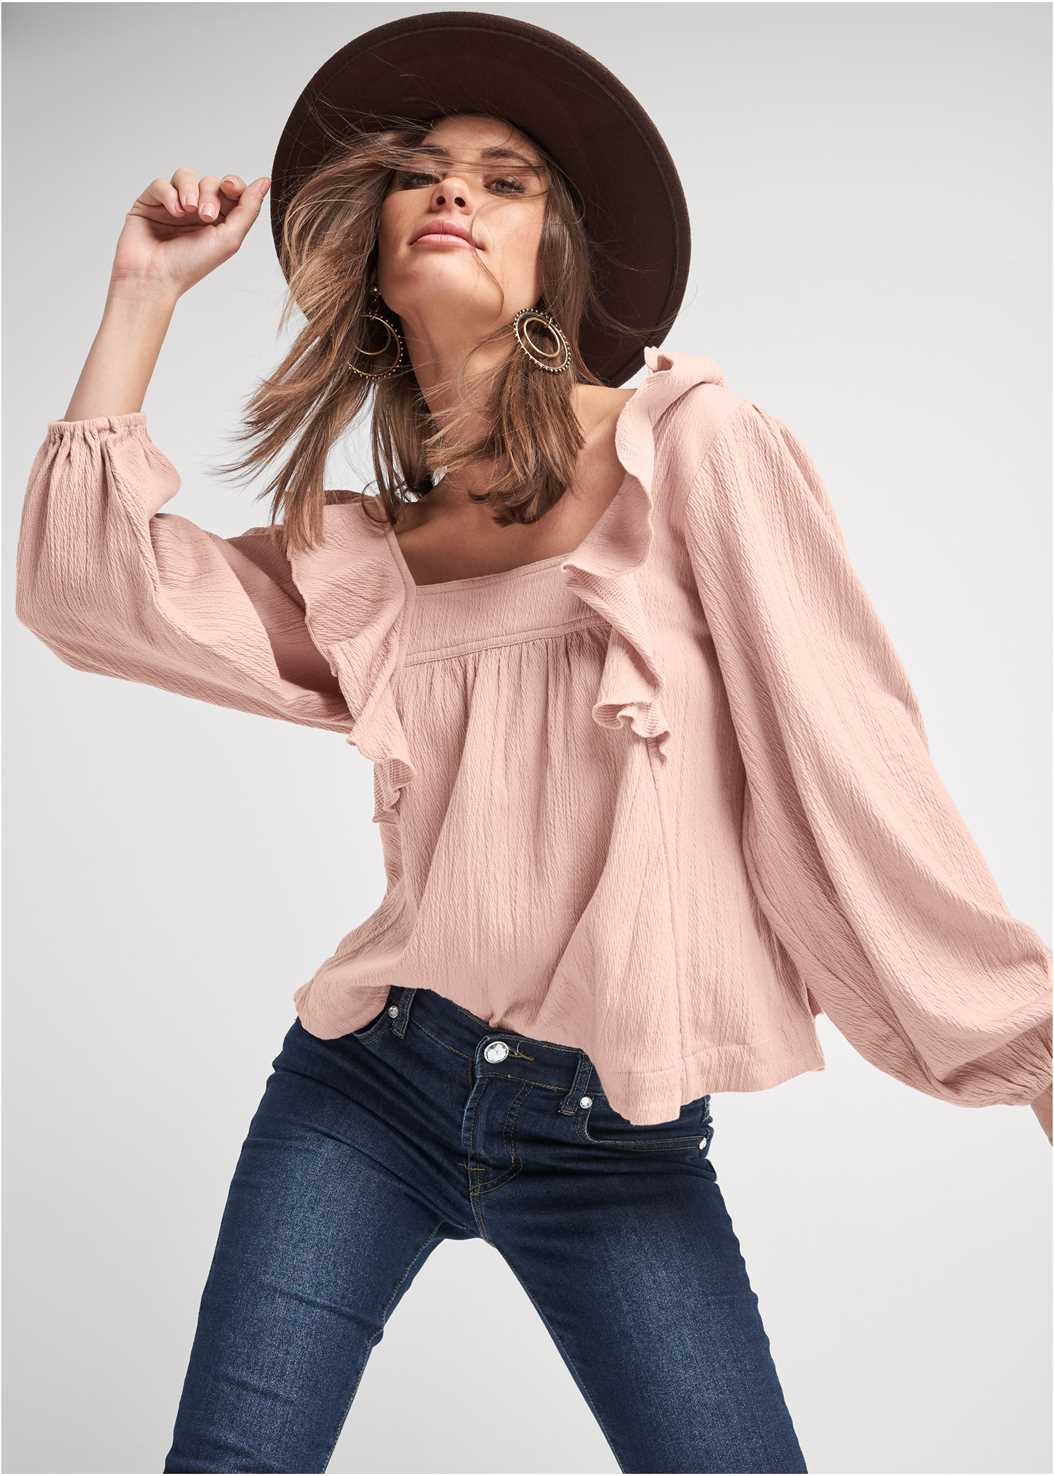 Ruffle Blouse,Mid Rise Color Skinny Jeans